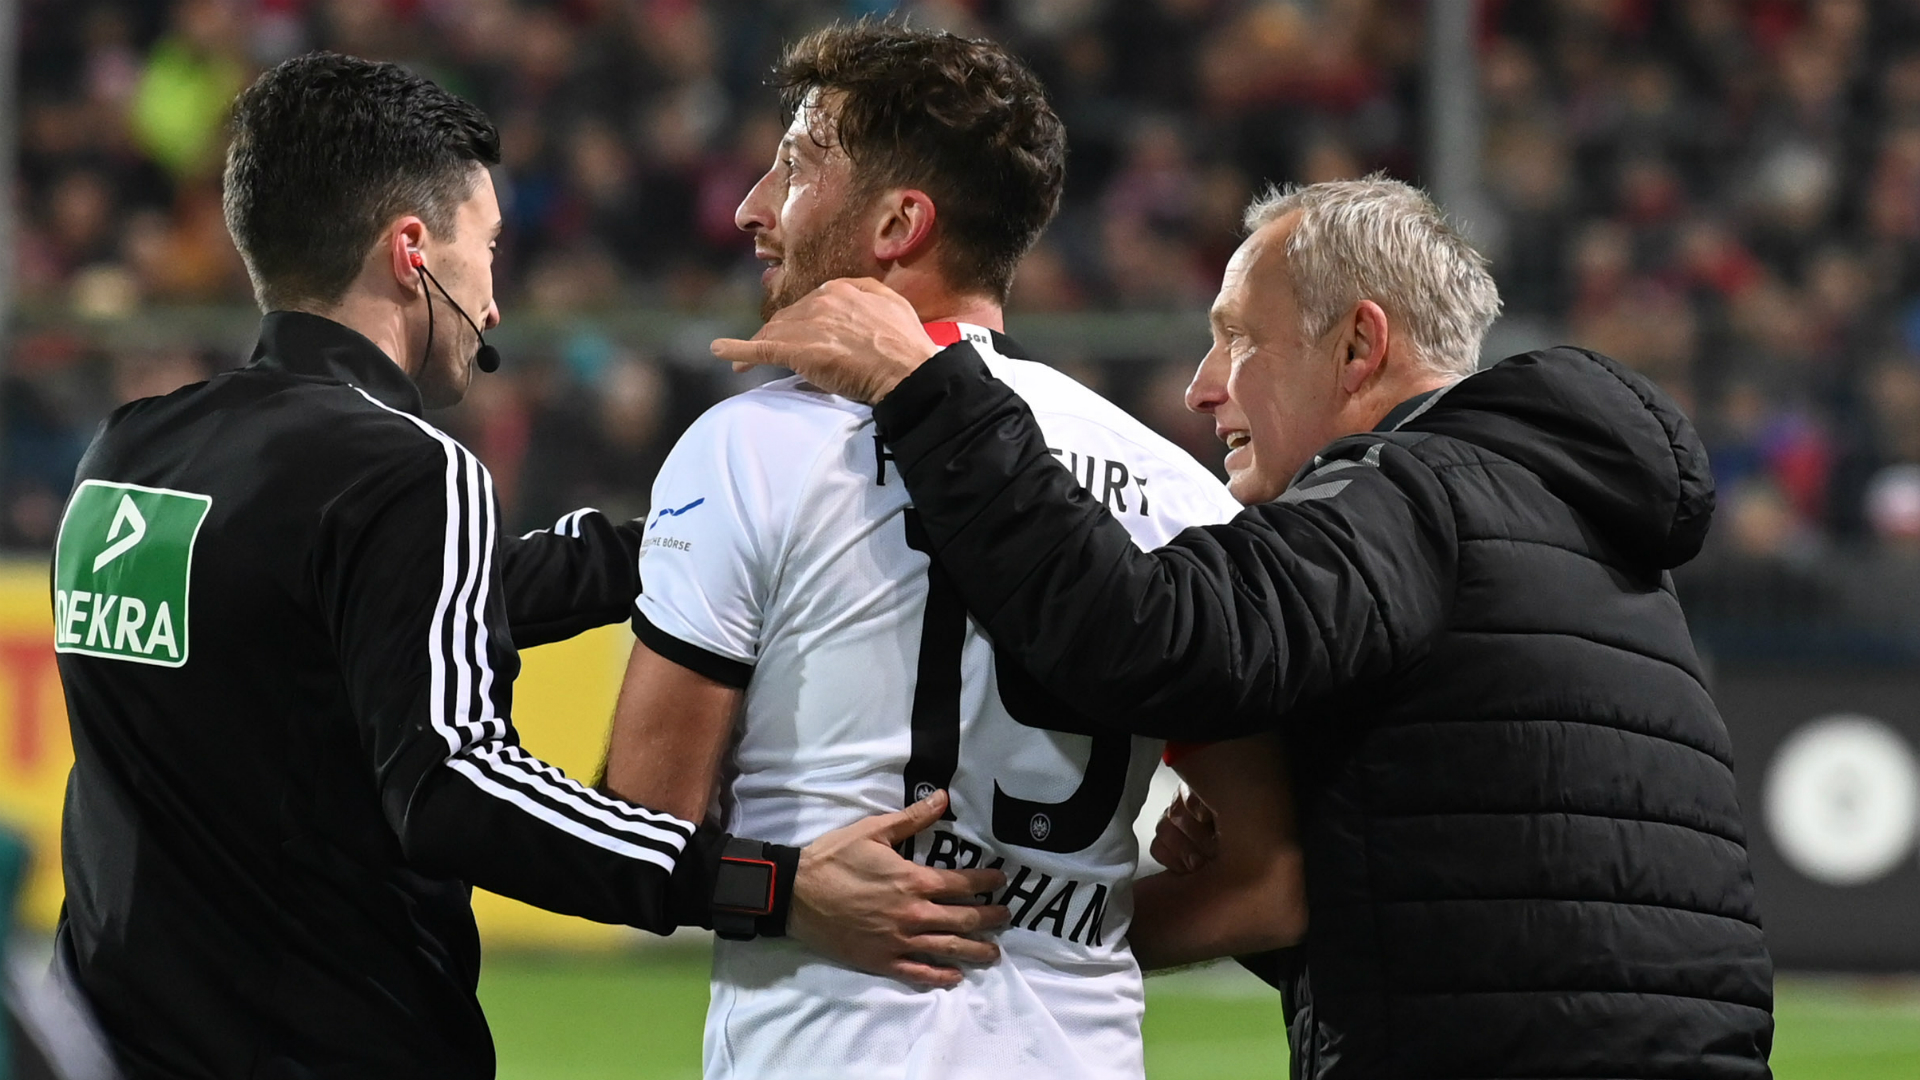 Bobic disapproves of Abraham's actions after Eintracht captain charges over Freiburg coach